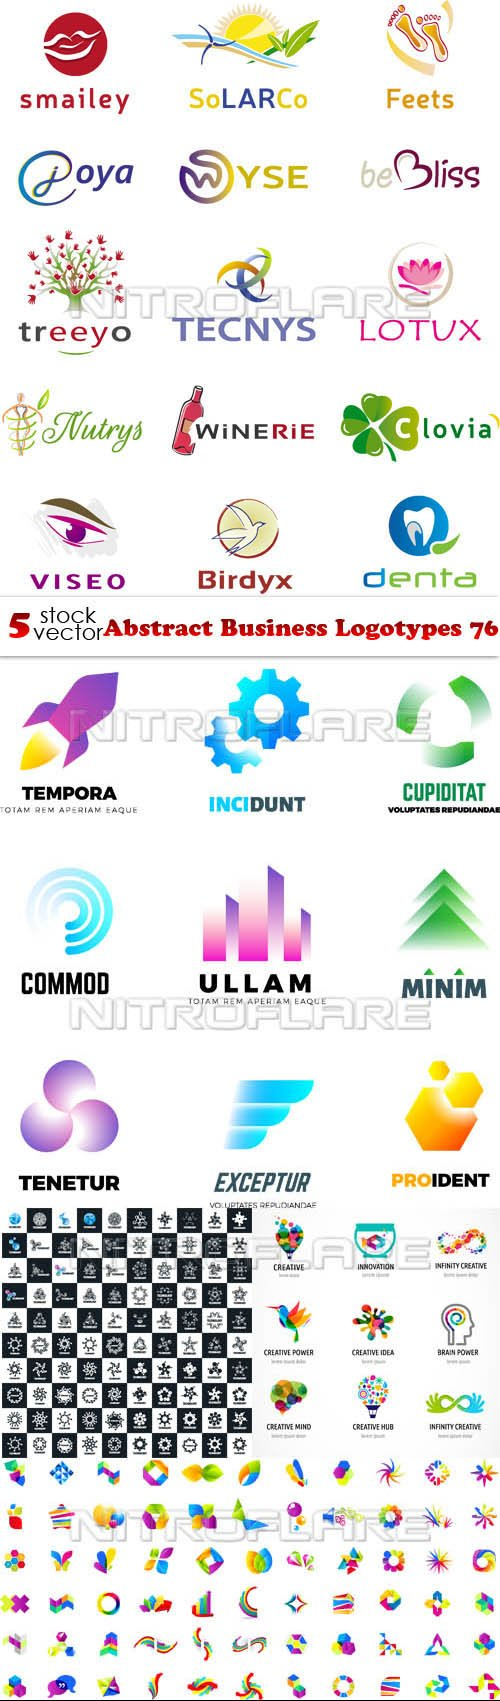 Vectors - Abstract Business Logotypes 76